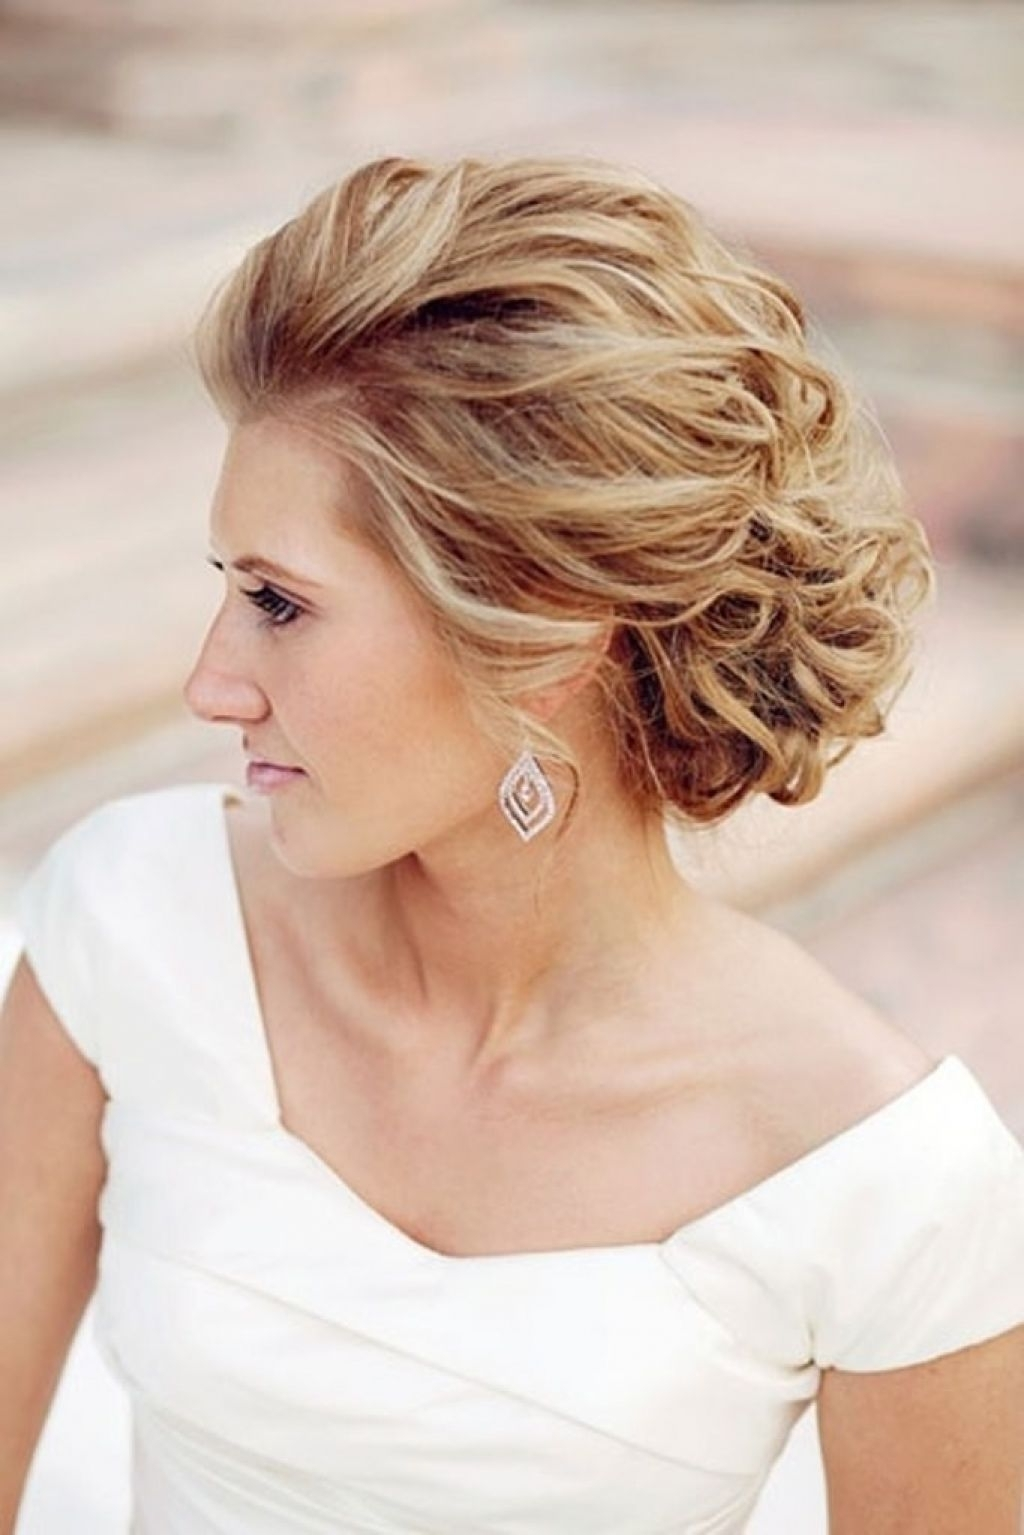 Bridesmaid Hairstyles For Medium Length Hair Wedding Design Ideas For Well Known Bridesmaid Hairstyles For Short To Medium Length Hair (View 10 of 15)